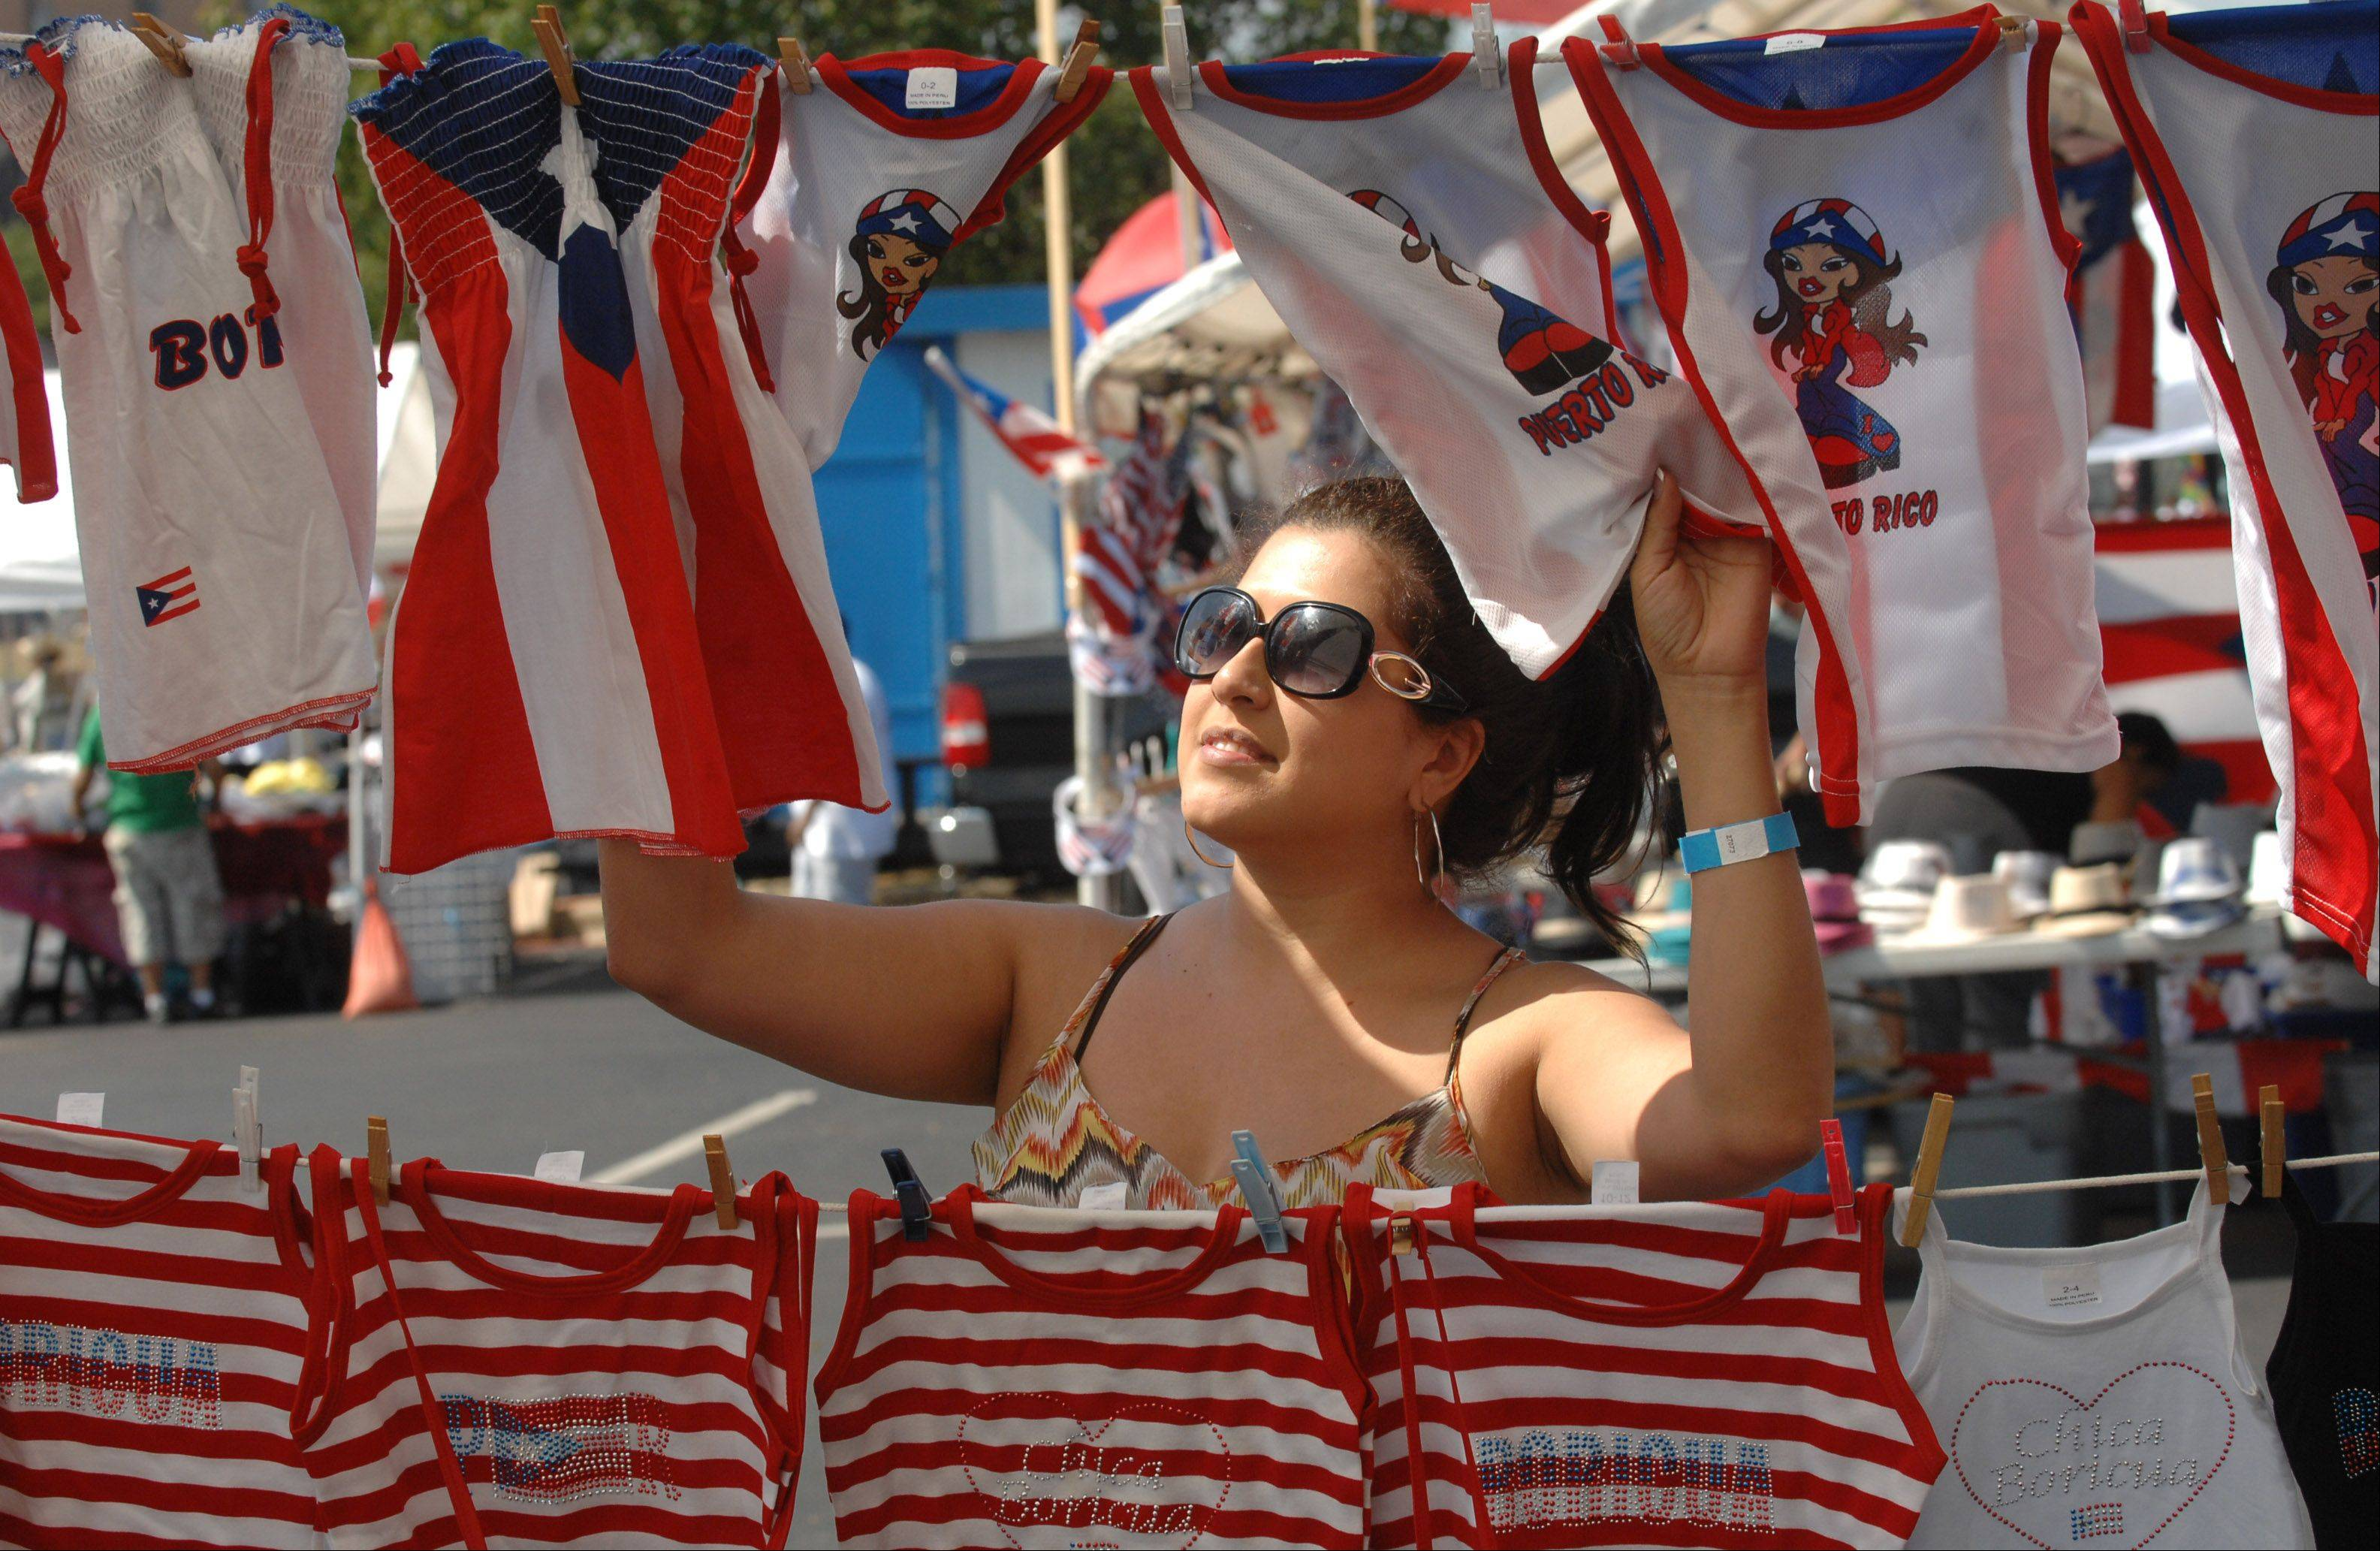 RiverEdge to host Aurora Puerto Rican fest despite initial cost concerns